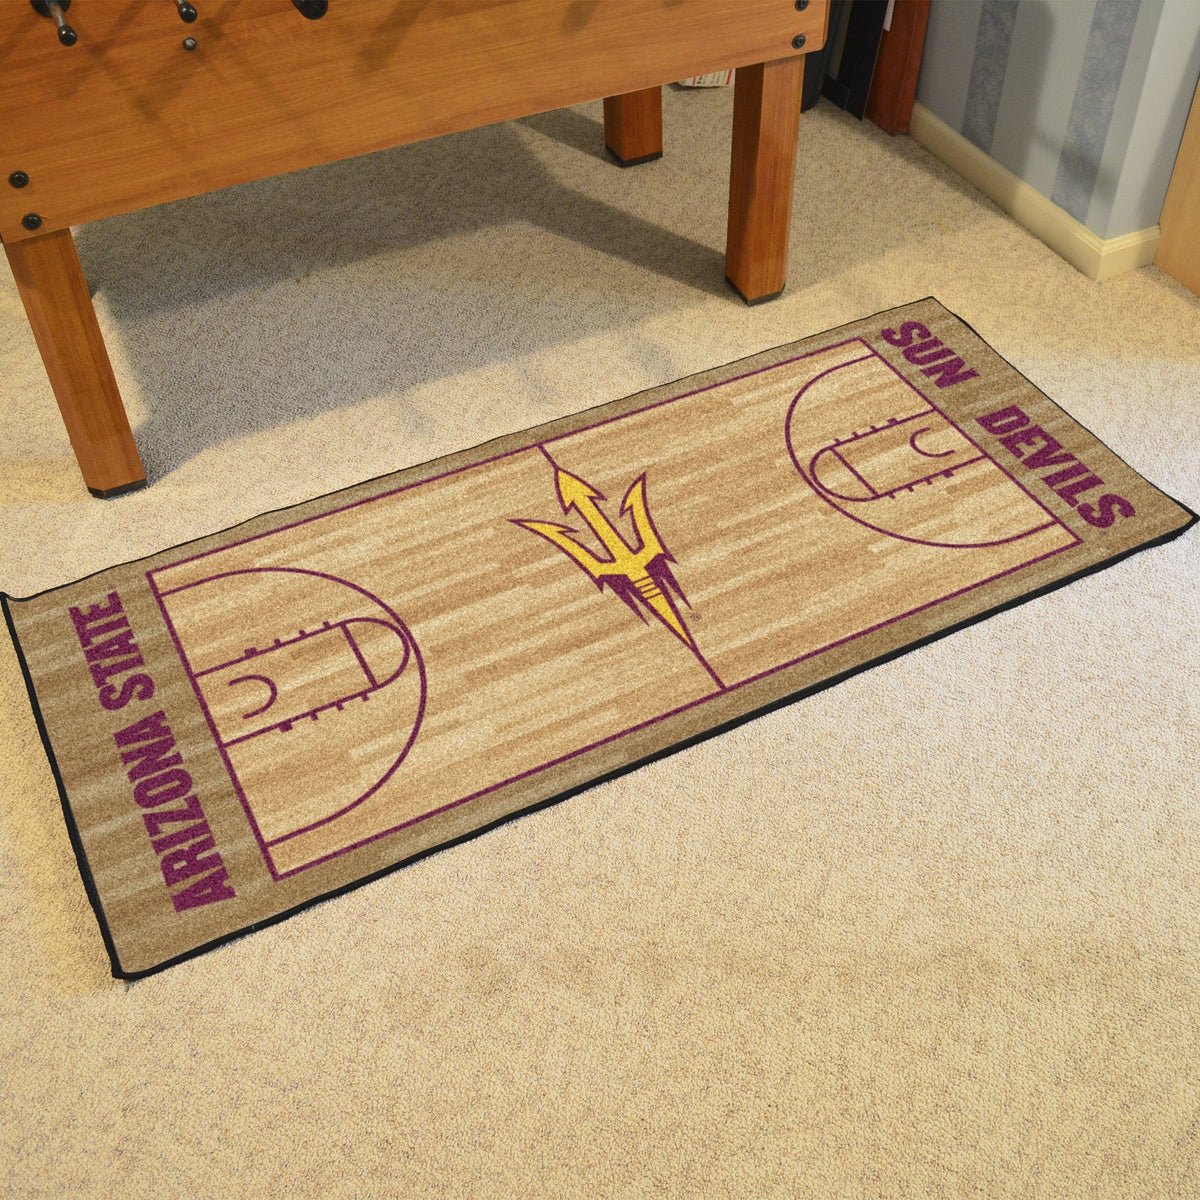 Collegiate - NCAA Basketball Runner Collegiate Mats, Rectangular Mats, NCAA Basketball Runner, Collegiate, Home Fan Mats Arizona State